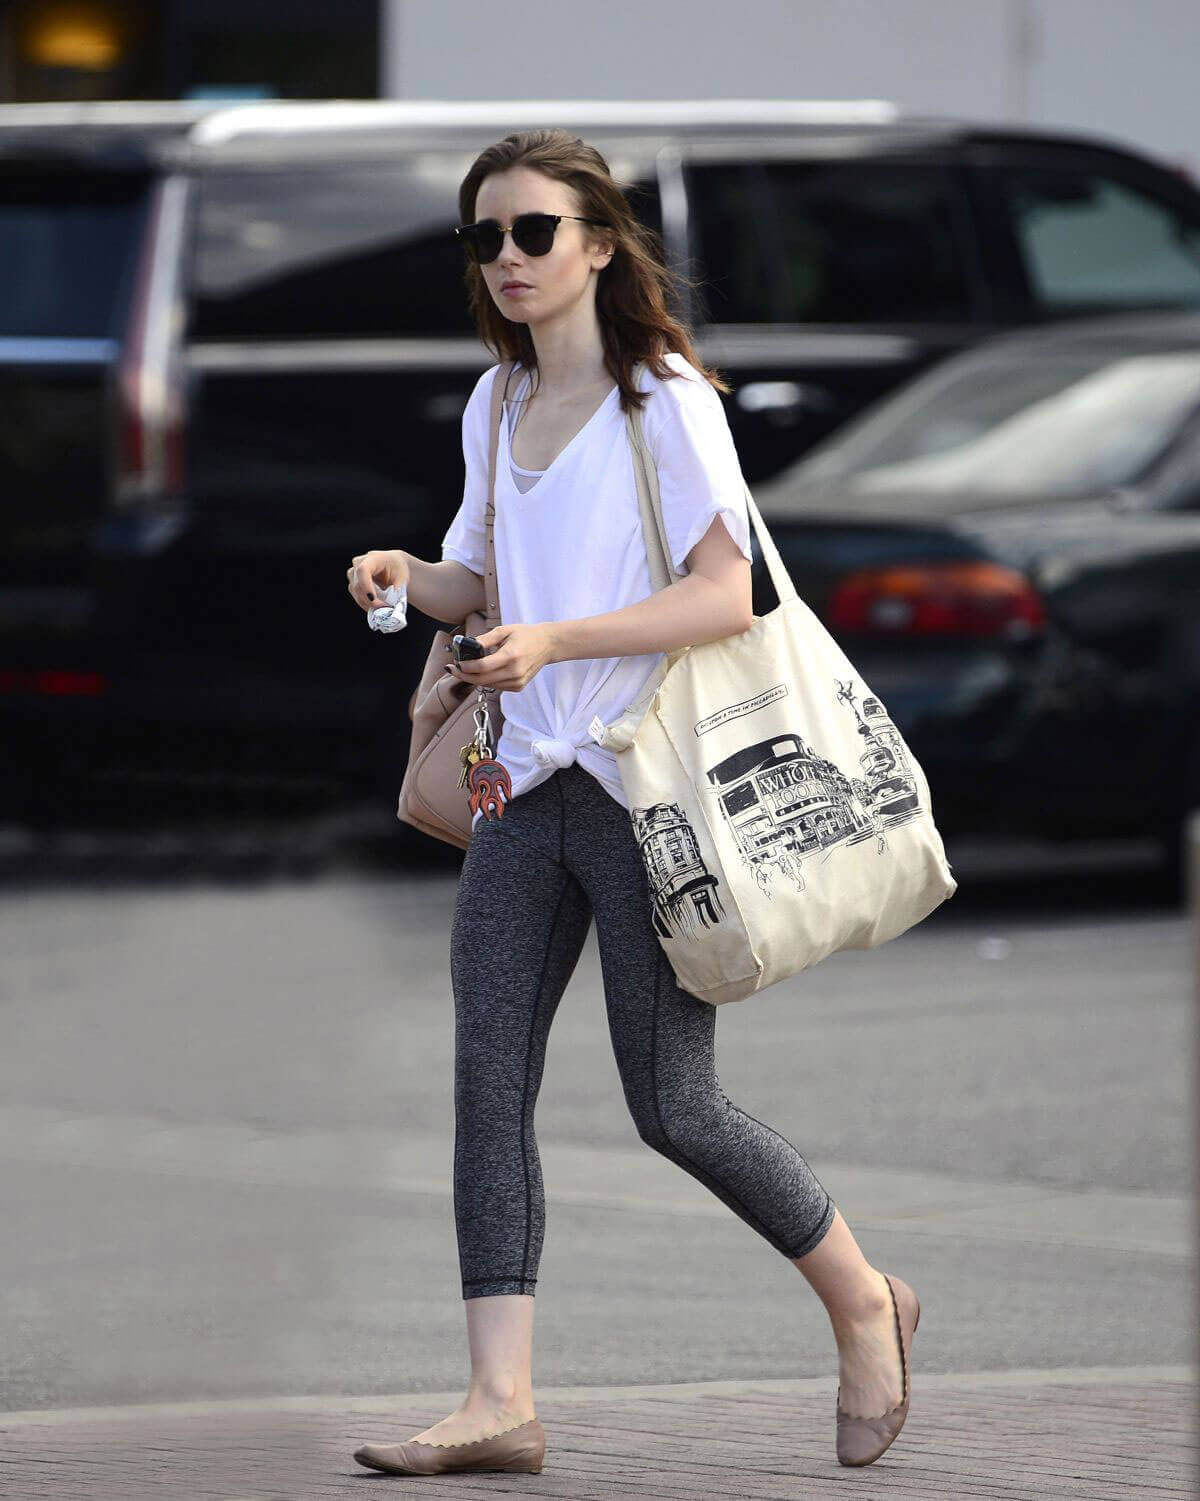 Lily Collins wears White Top & Tights Bottom Out in Los Angeles